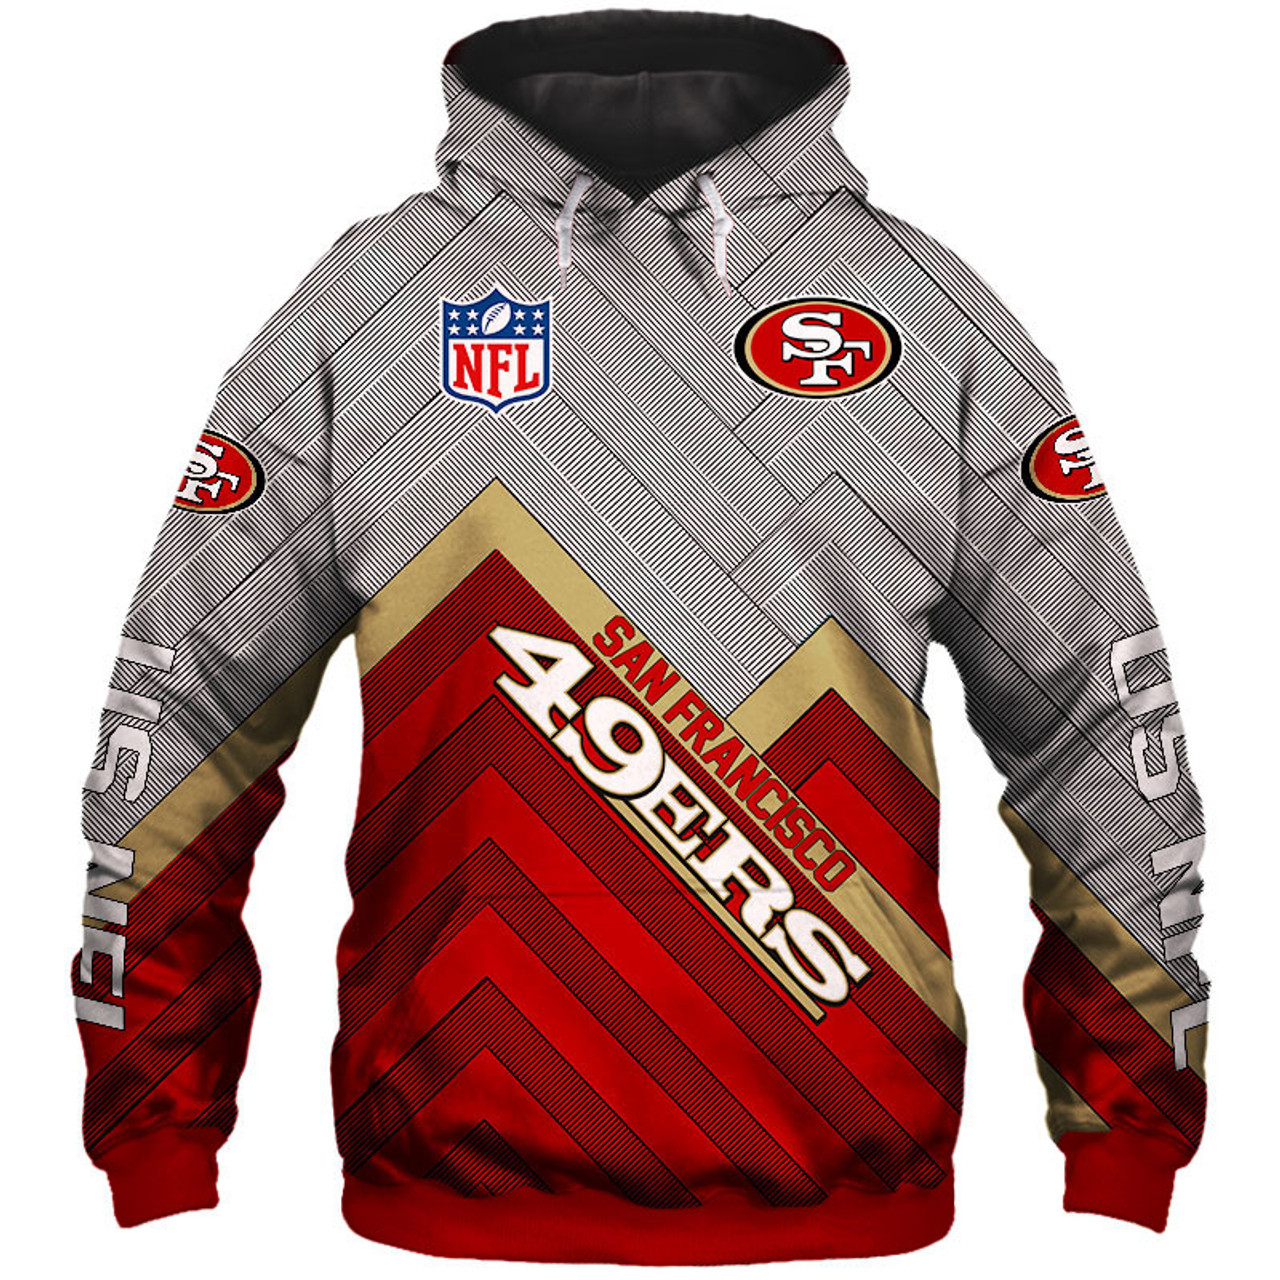 pretty nice 225a5 d3f49 **(NEW-OFFICIAL-N.F.L.SAN-FRANCISCO-49ERS-PULLOVER-HOODIES/3D-CUSTOM-49ERS-LOGOS  & OFFICIAL-49ERS-TEAM-COLORS/NICE-3D-DETAILED-GRAPHIC-PRINTED-DOUBLE-...